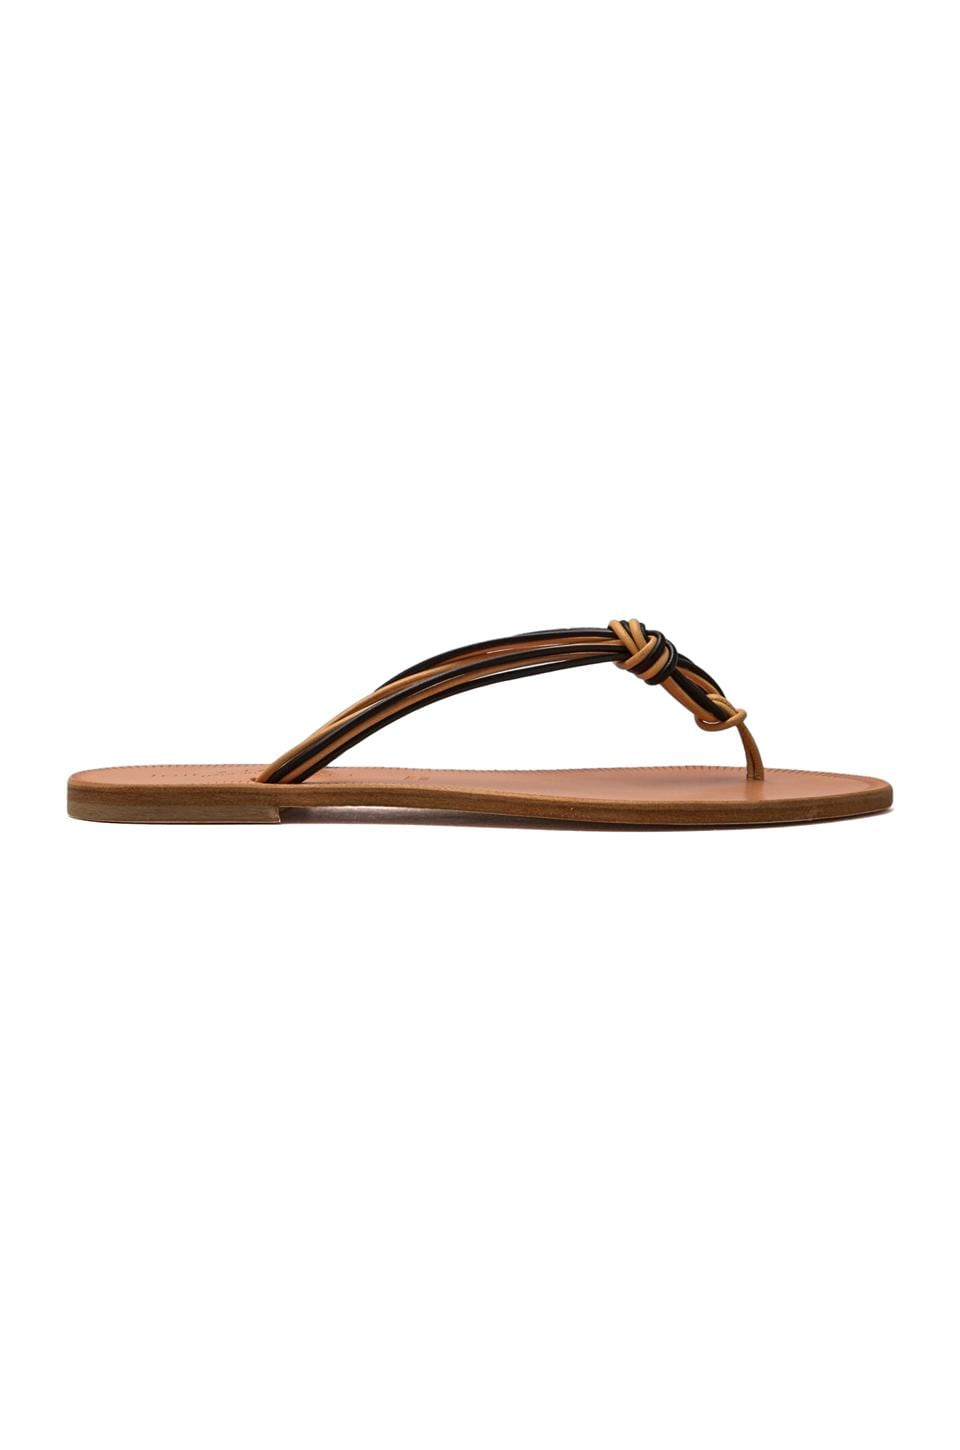 Joie a La Plage Palmetto Flip Flops in Black/Natural